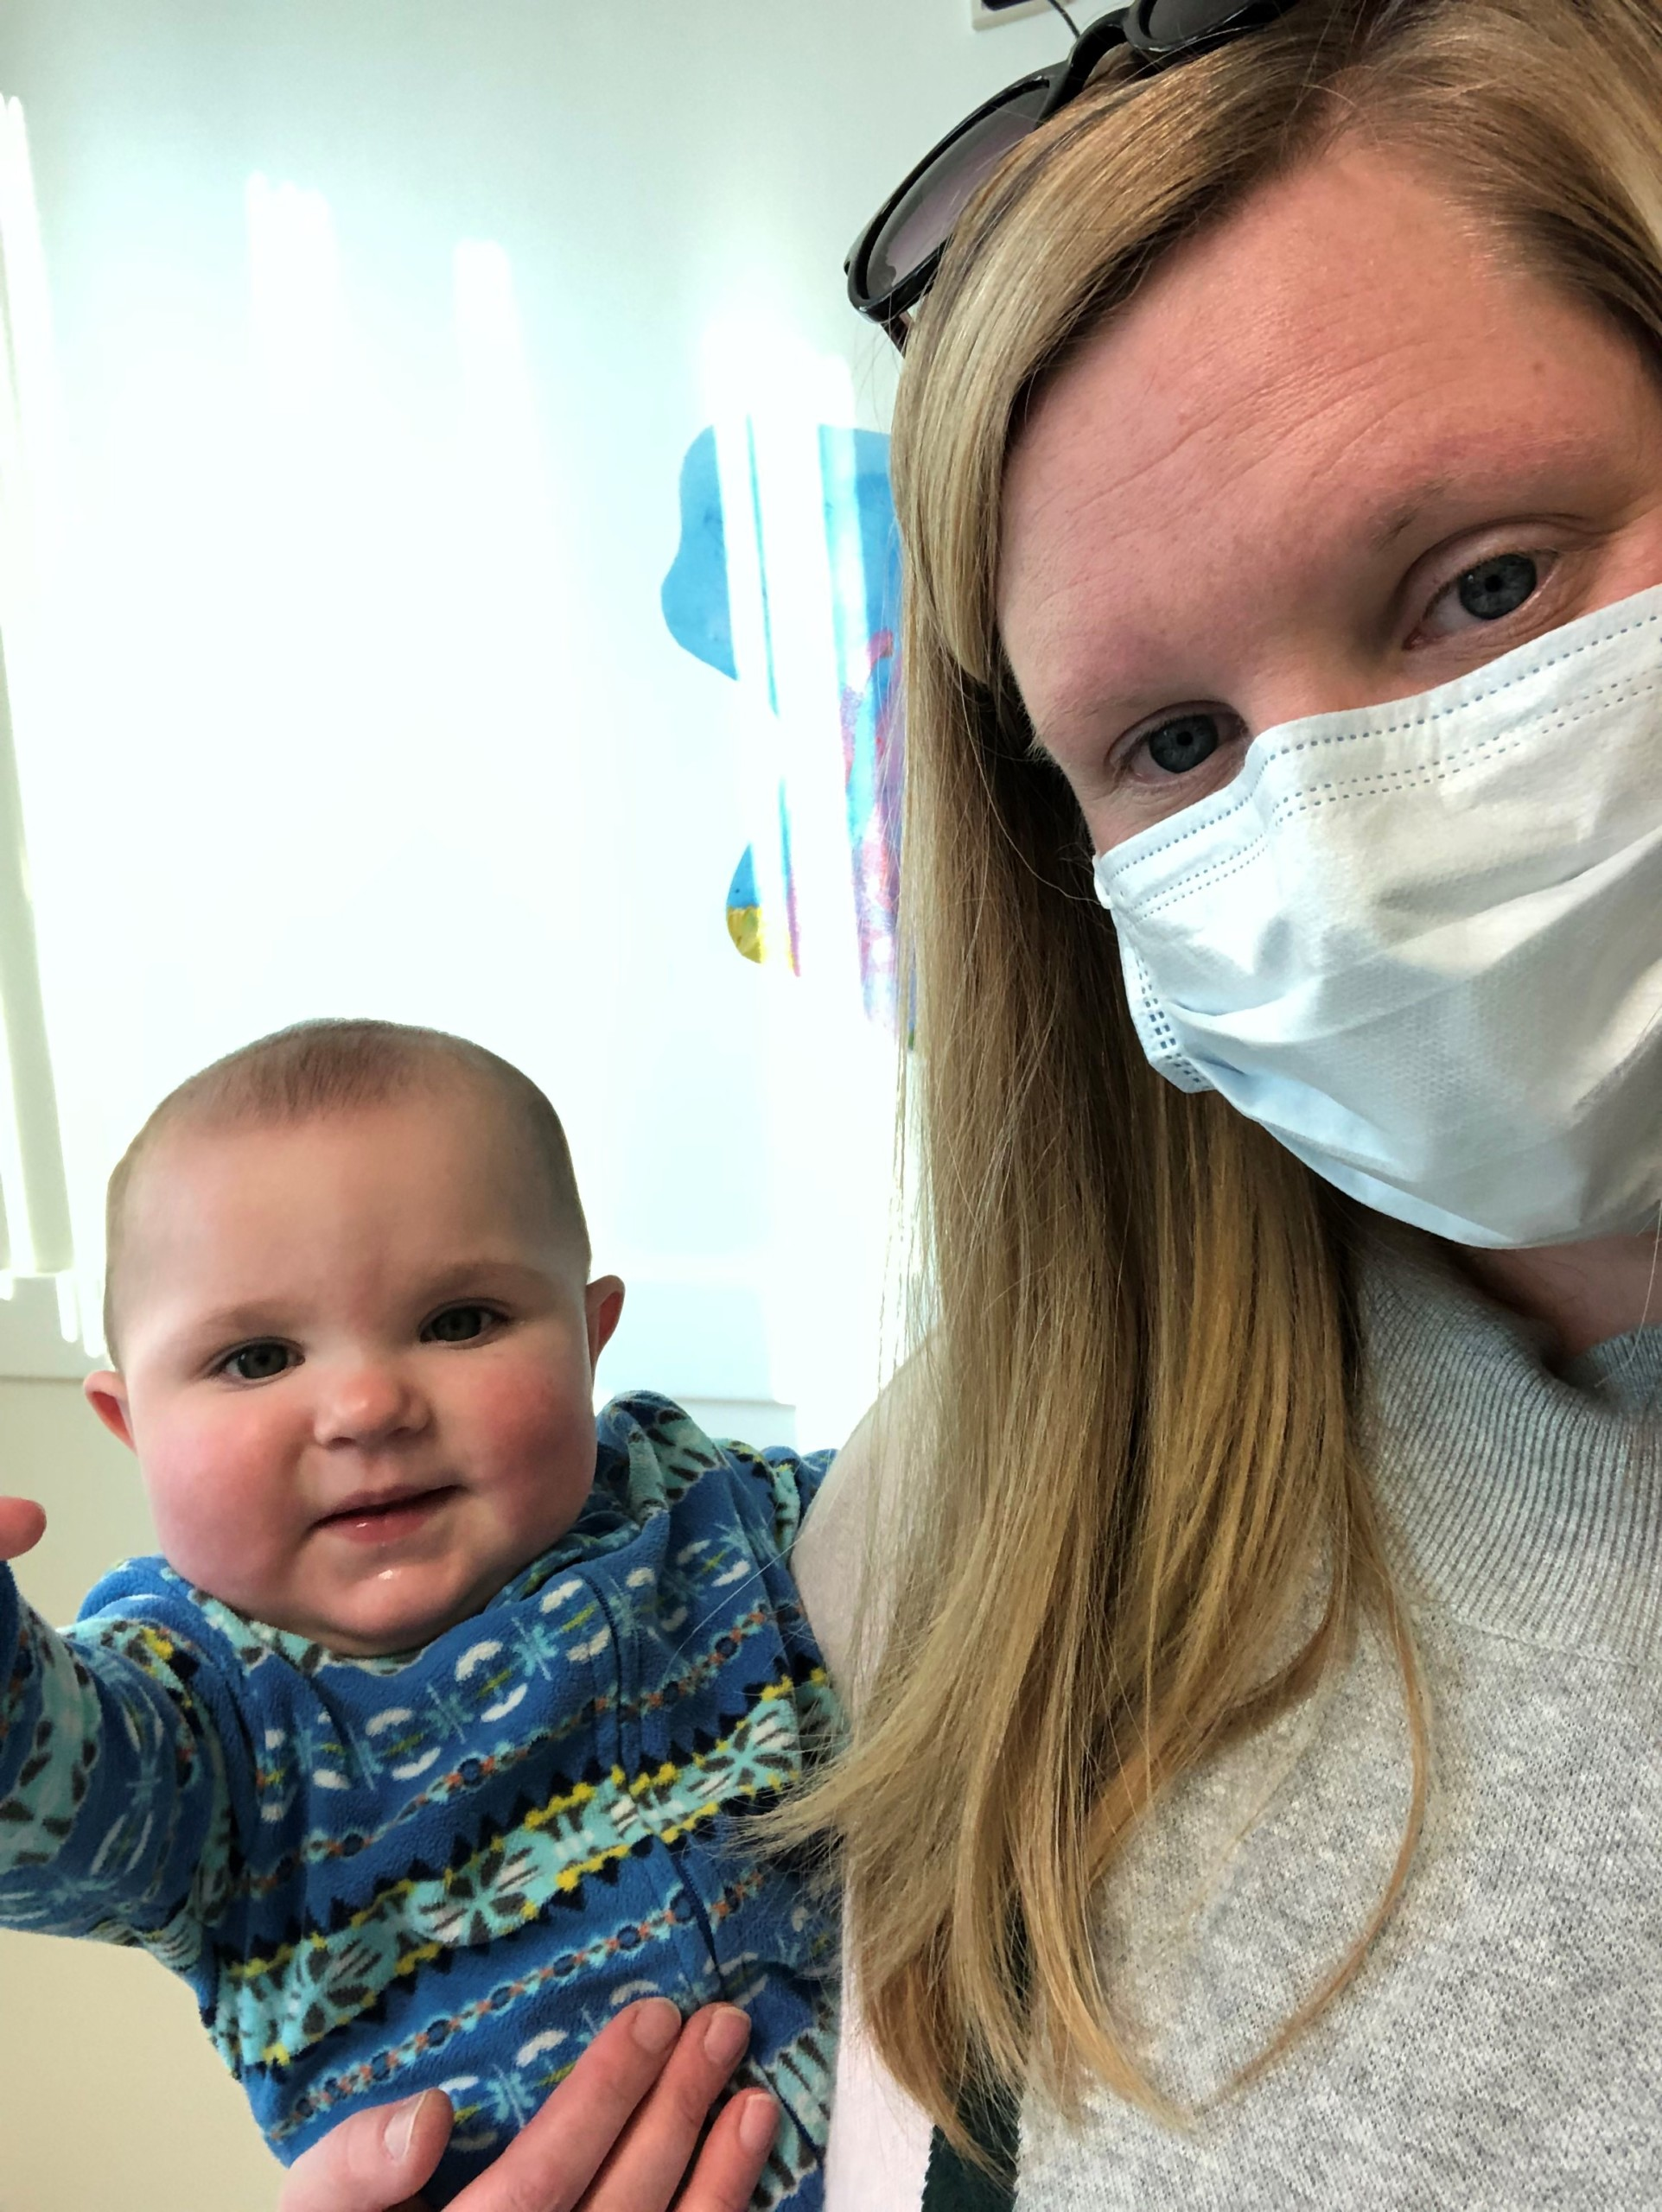 Esmae waits for her ear tube surgery with her mom.